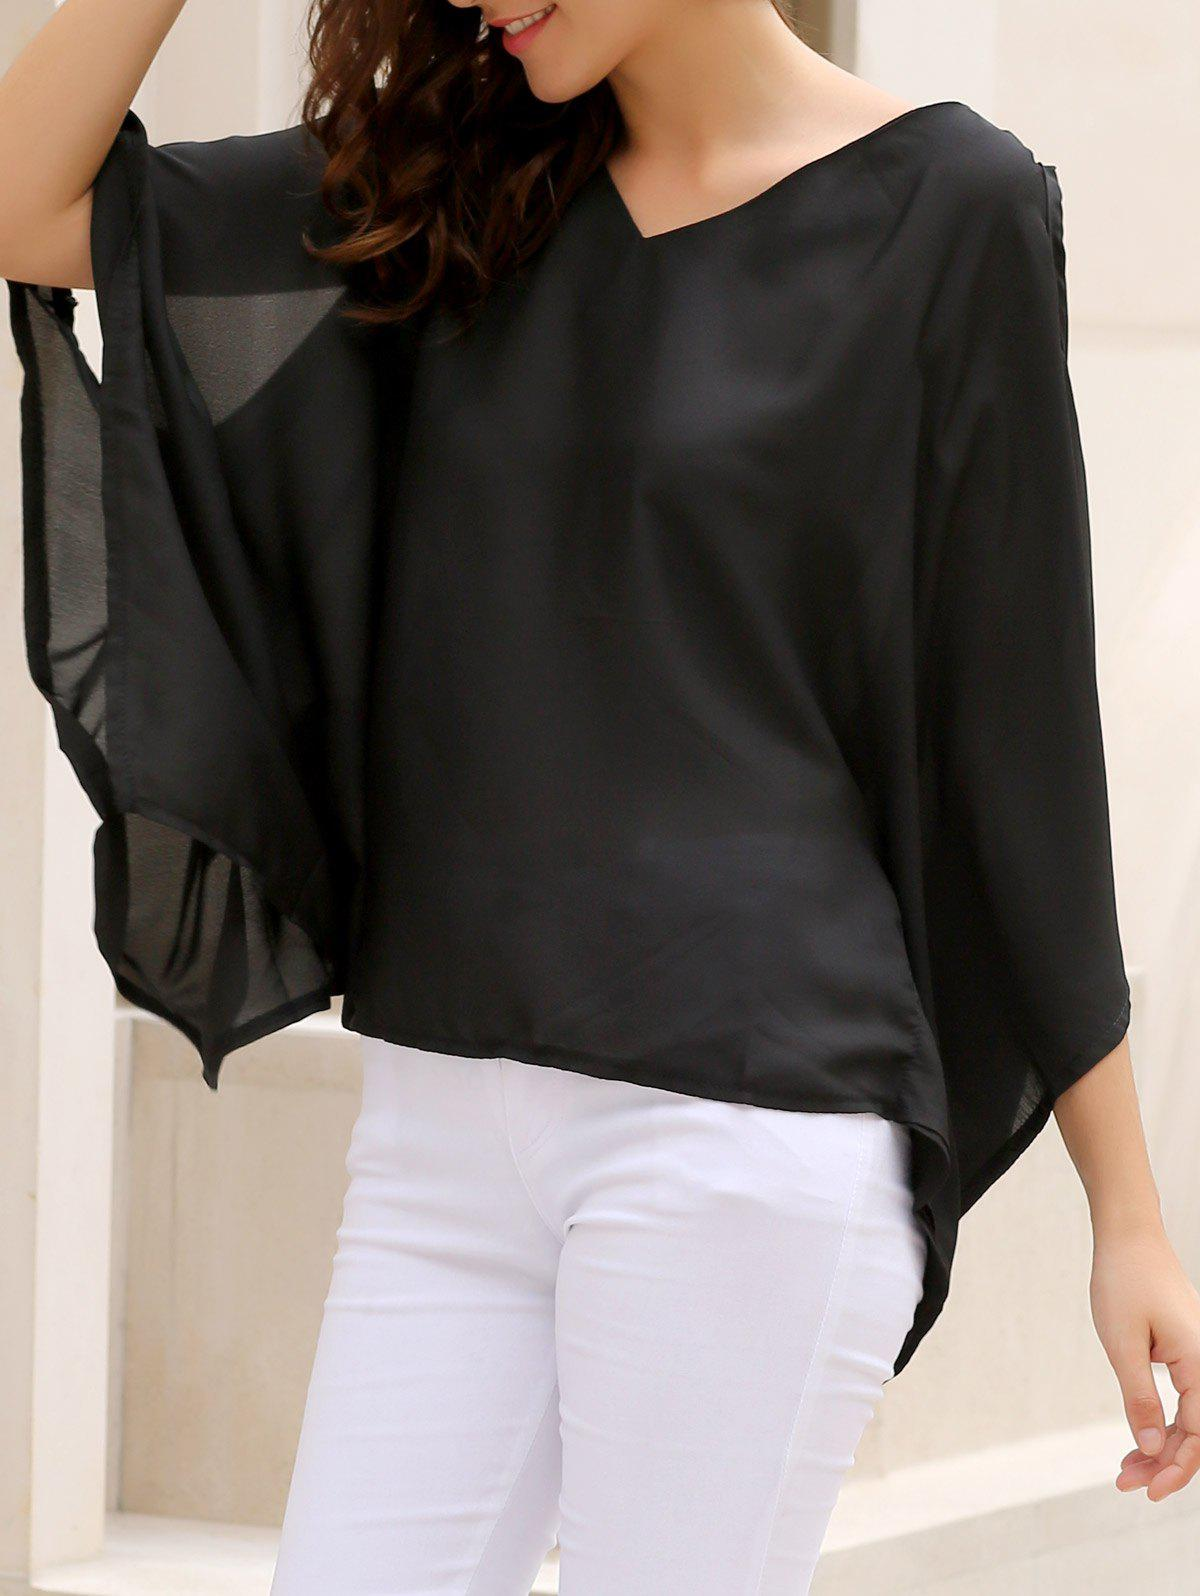 Alluring Women's V-Neck Solid Color Plus Size Hollow Out Blouse stylish plus size solid color v neck blouse